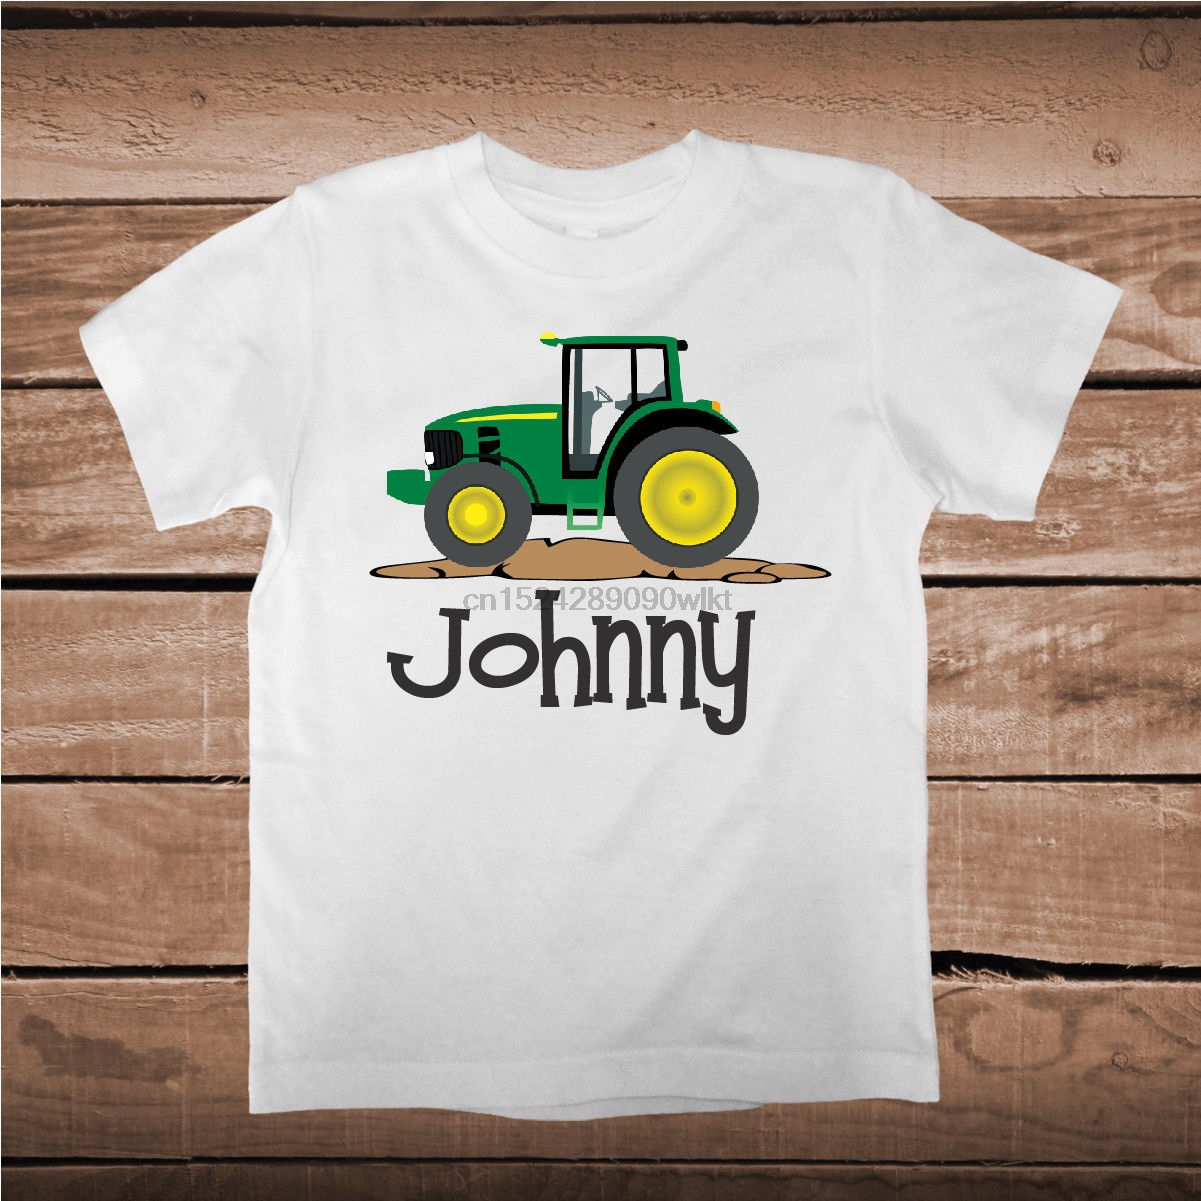 Tractor Tee Tees Shirt With Custom Name Boys 1st Birthday T Boy Gift Bb63 In Shirts From Mens Clothing On Aliexpress